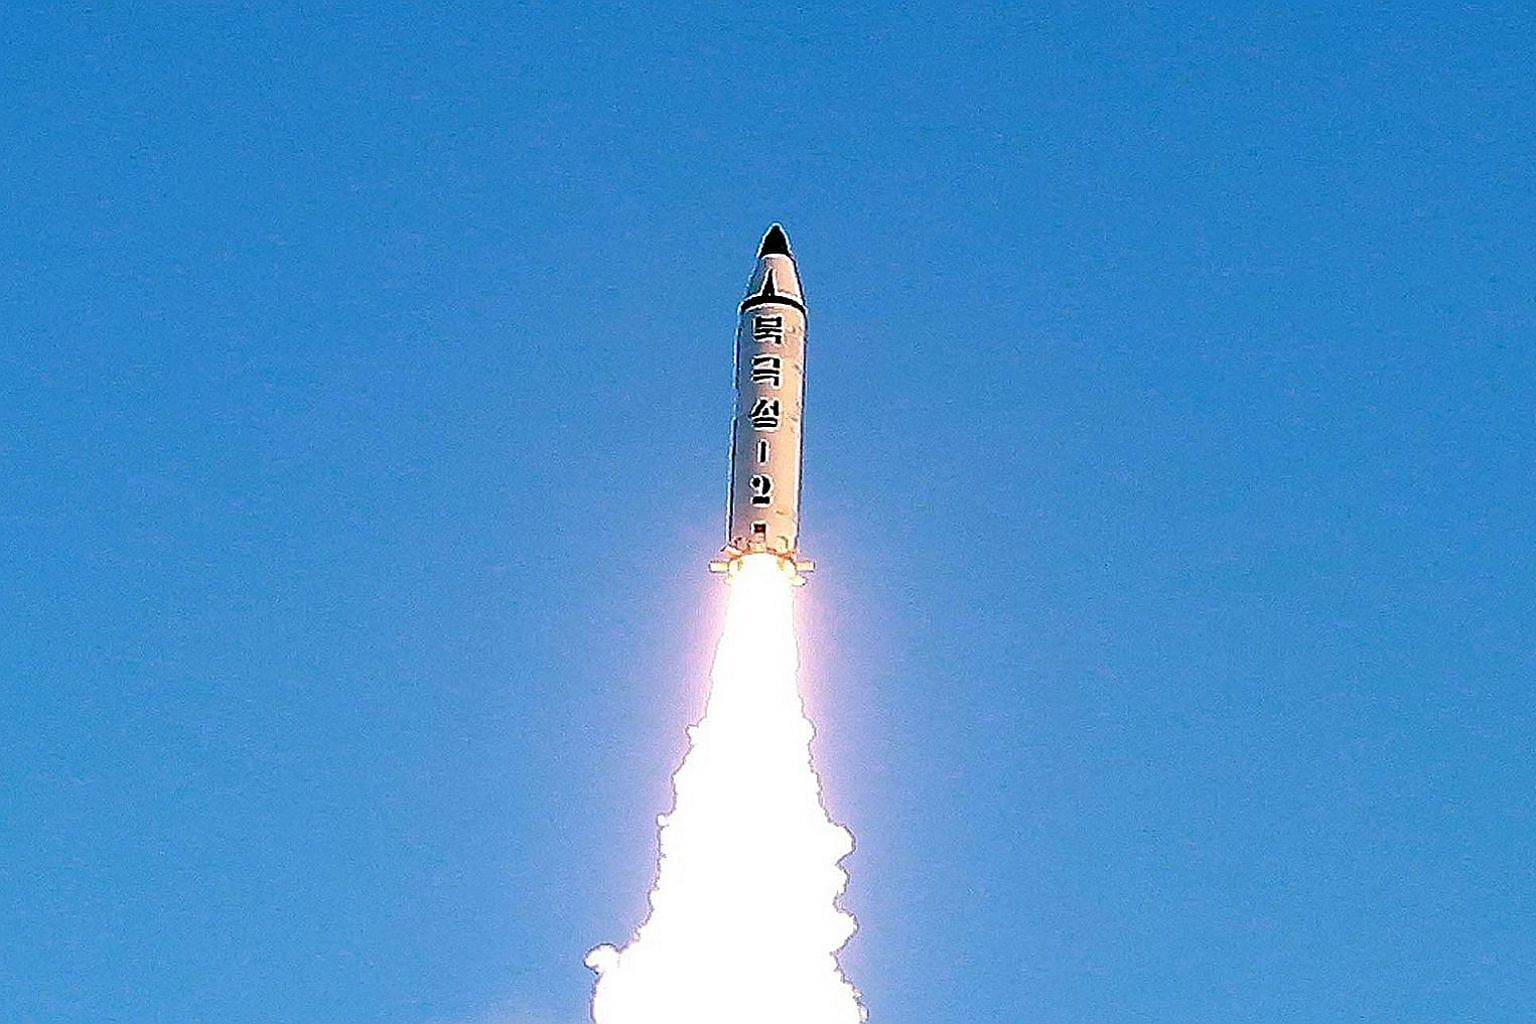 Earlier this month, North Korea tested a new ballistic missile.